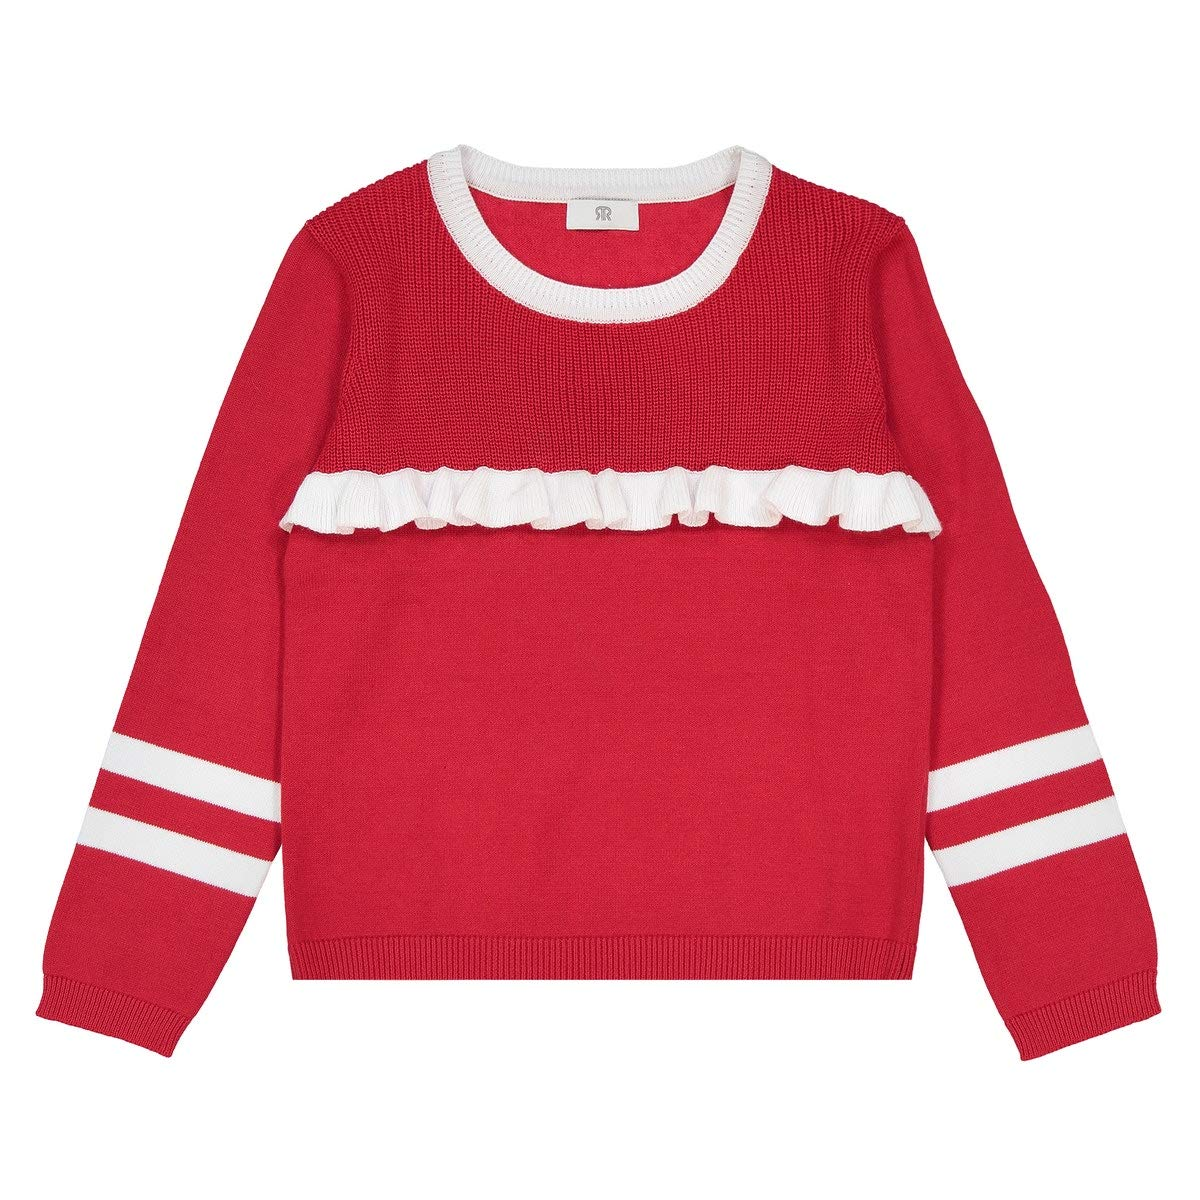 La Redoute Uniross Fine Gauge Knit Jumper//Sweater with Contrasting Ruffle 3-12 Years